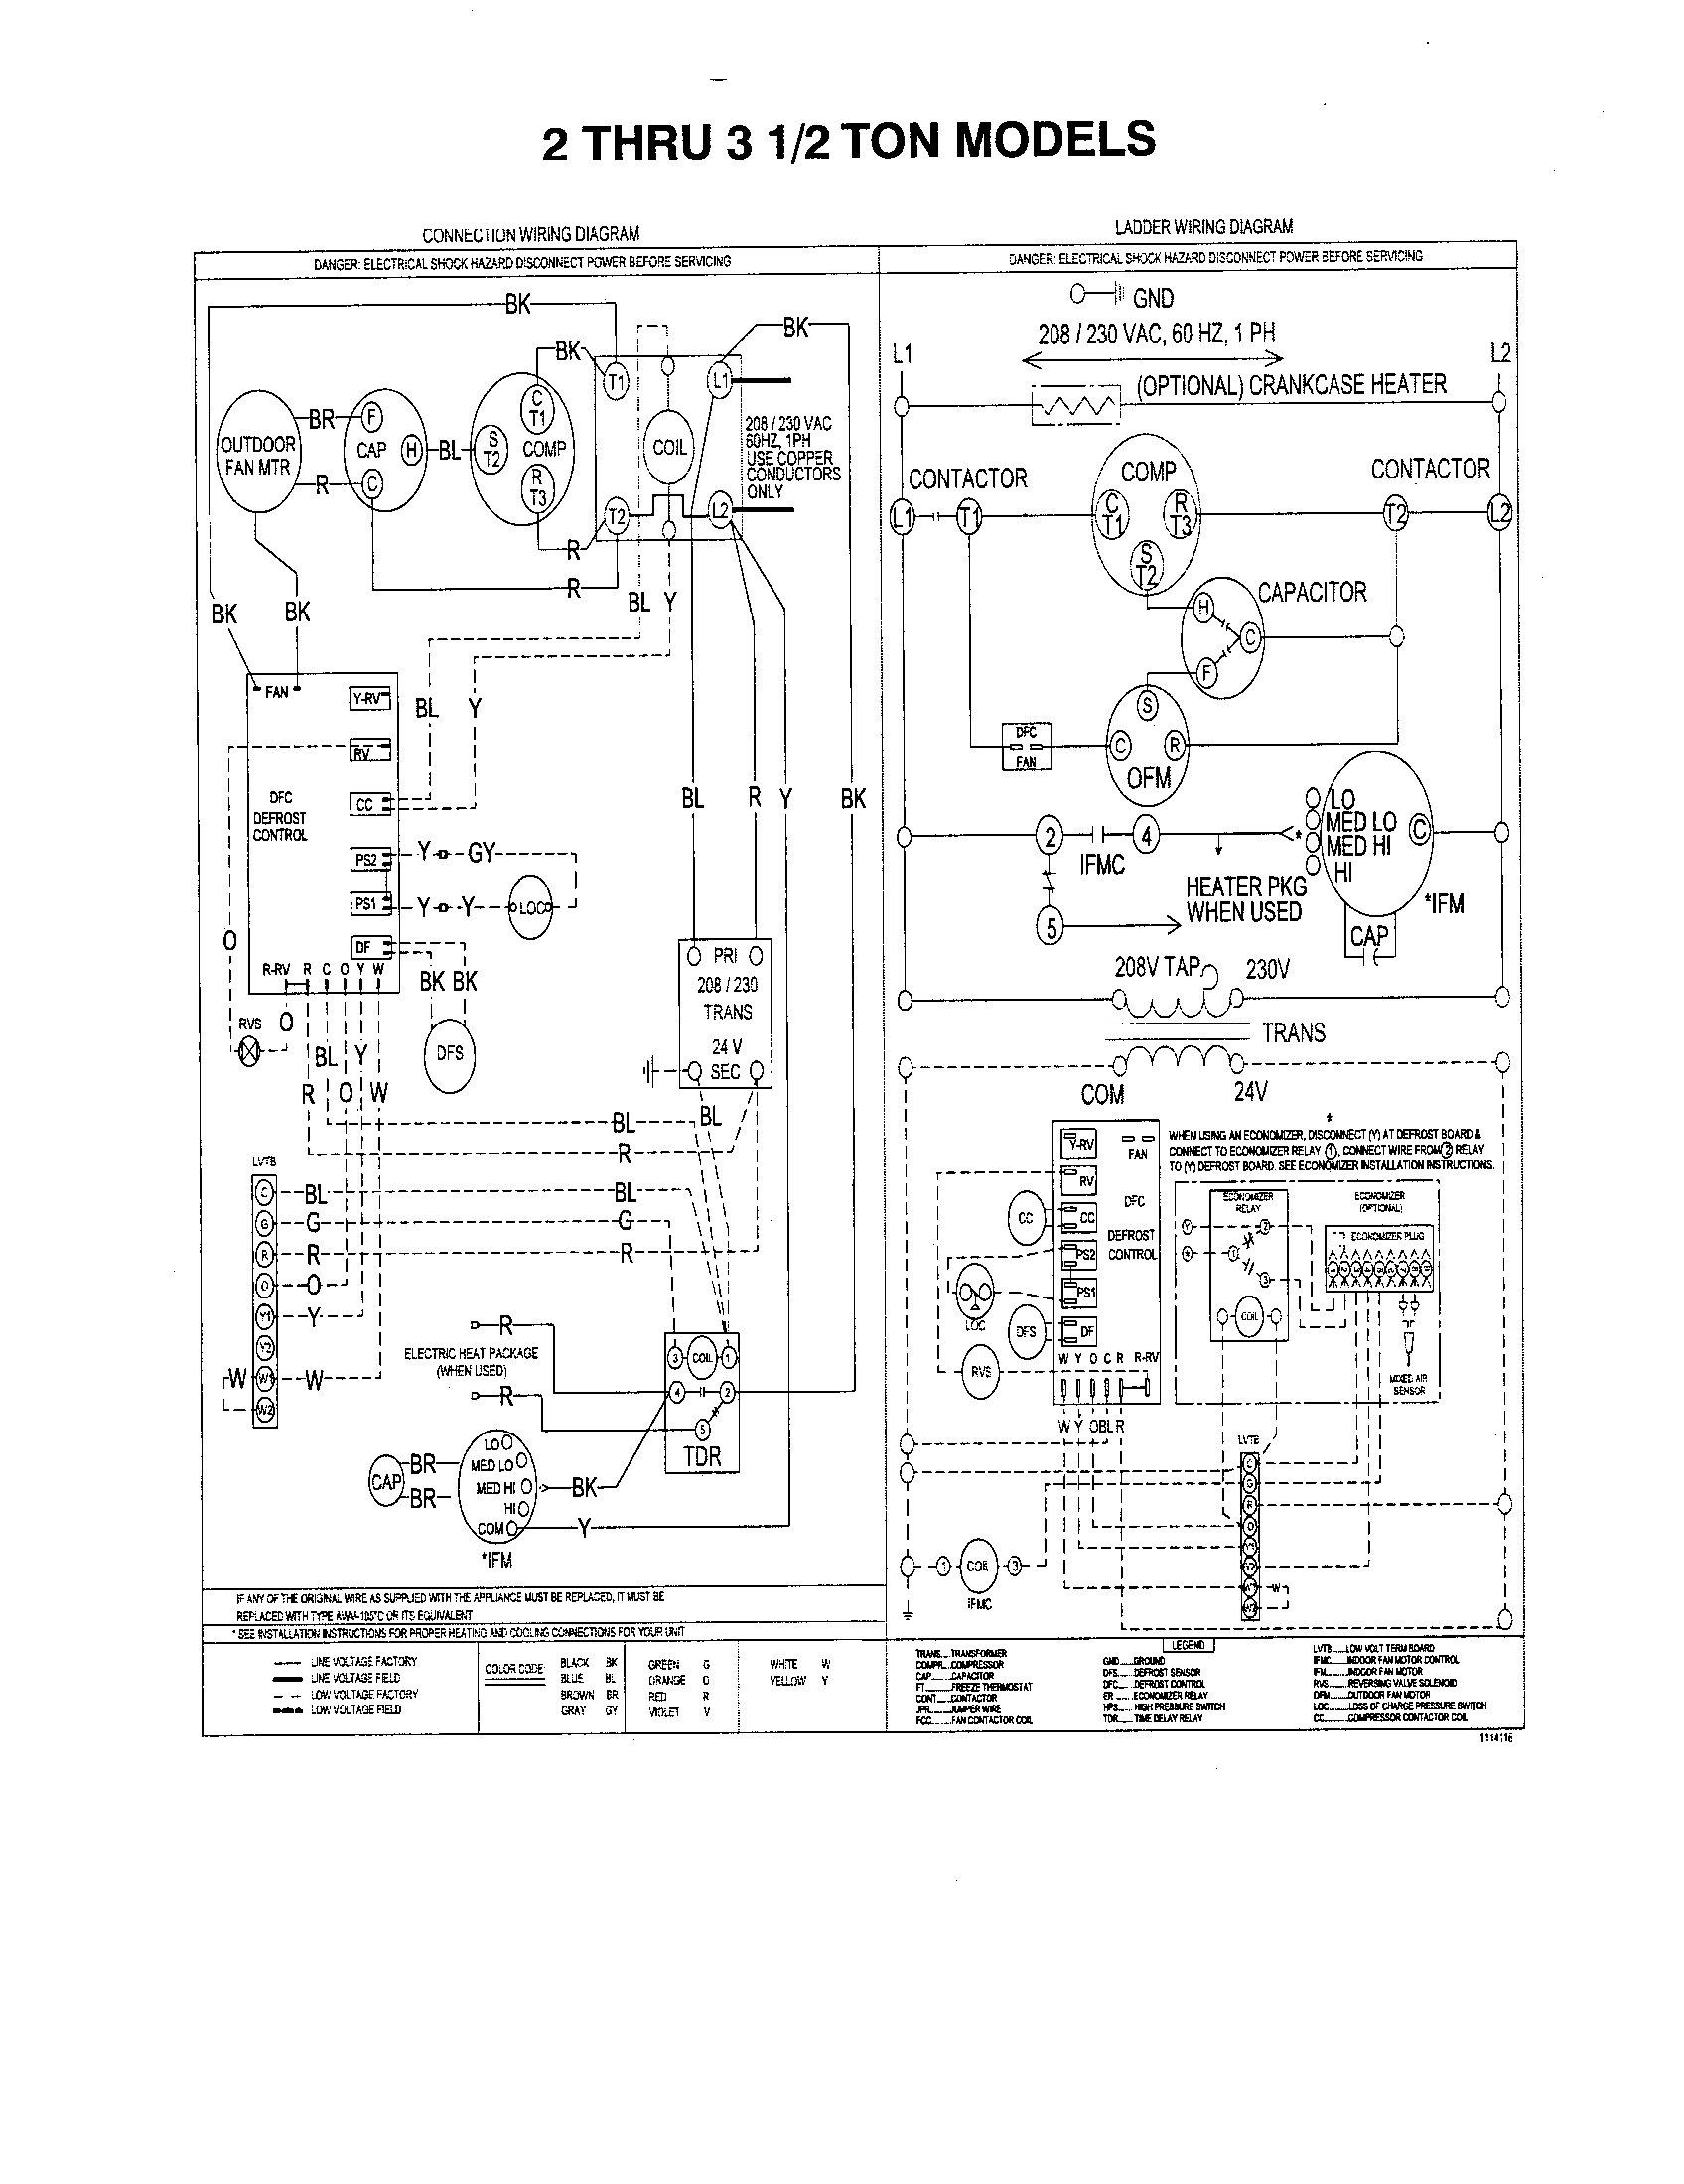 heil ac wiring diagram yamaha fzr 600 package heat pump schematic get free image about